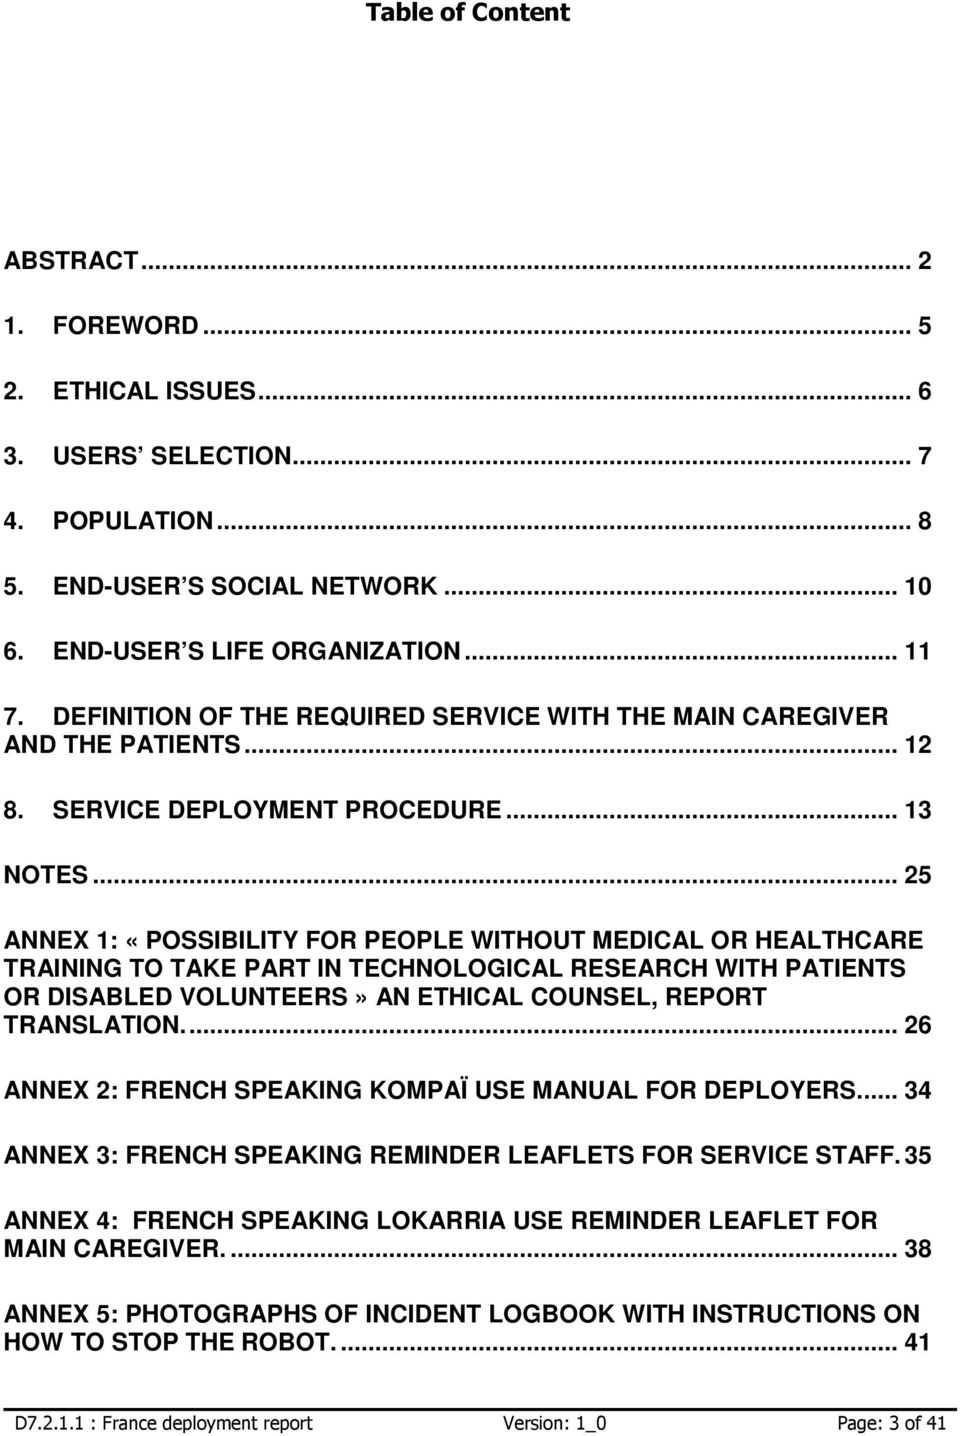 .. 25 ANNEX 1: «POSSIBILITY FOR PEOPLE WITHOUT MEDICAL OR HEALTHCARE TRAINING TO TAKE PART IN TECHNOLOGICAL RESEARCH WITH PATIENTS OR DISABLED VOLUNTEERS» AN ETHICAL COUNSEL, REPORT TRANSLATION.